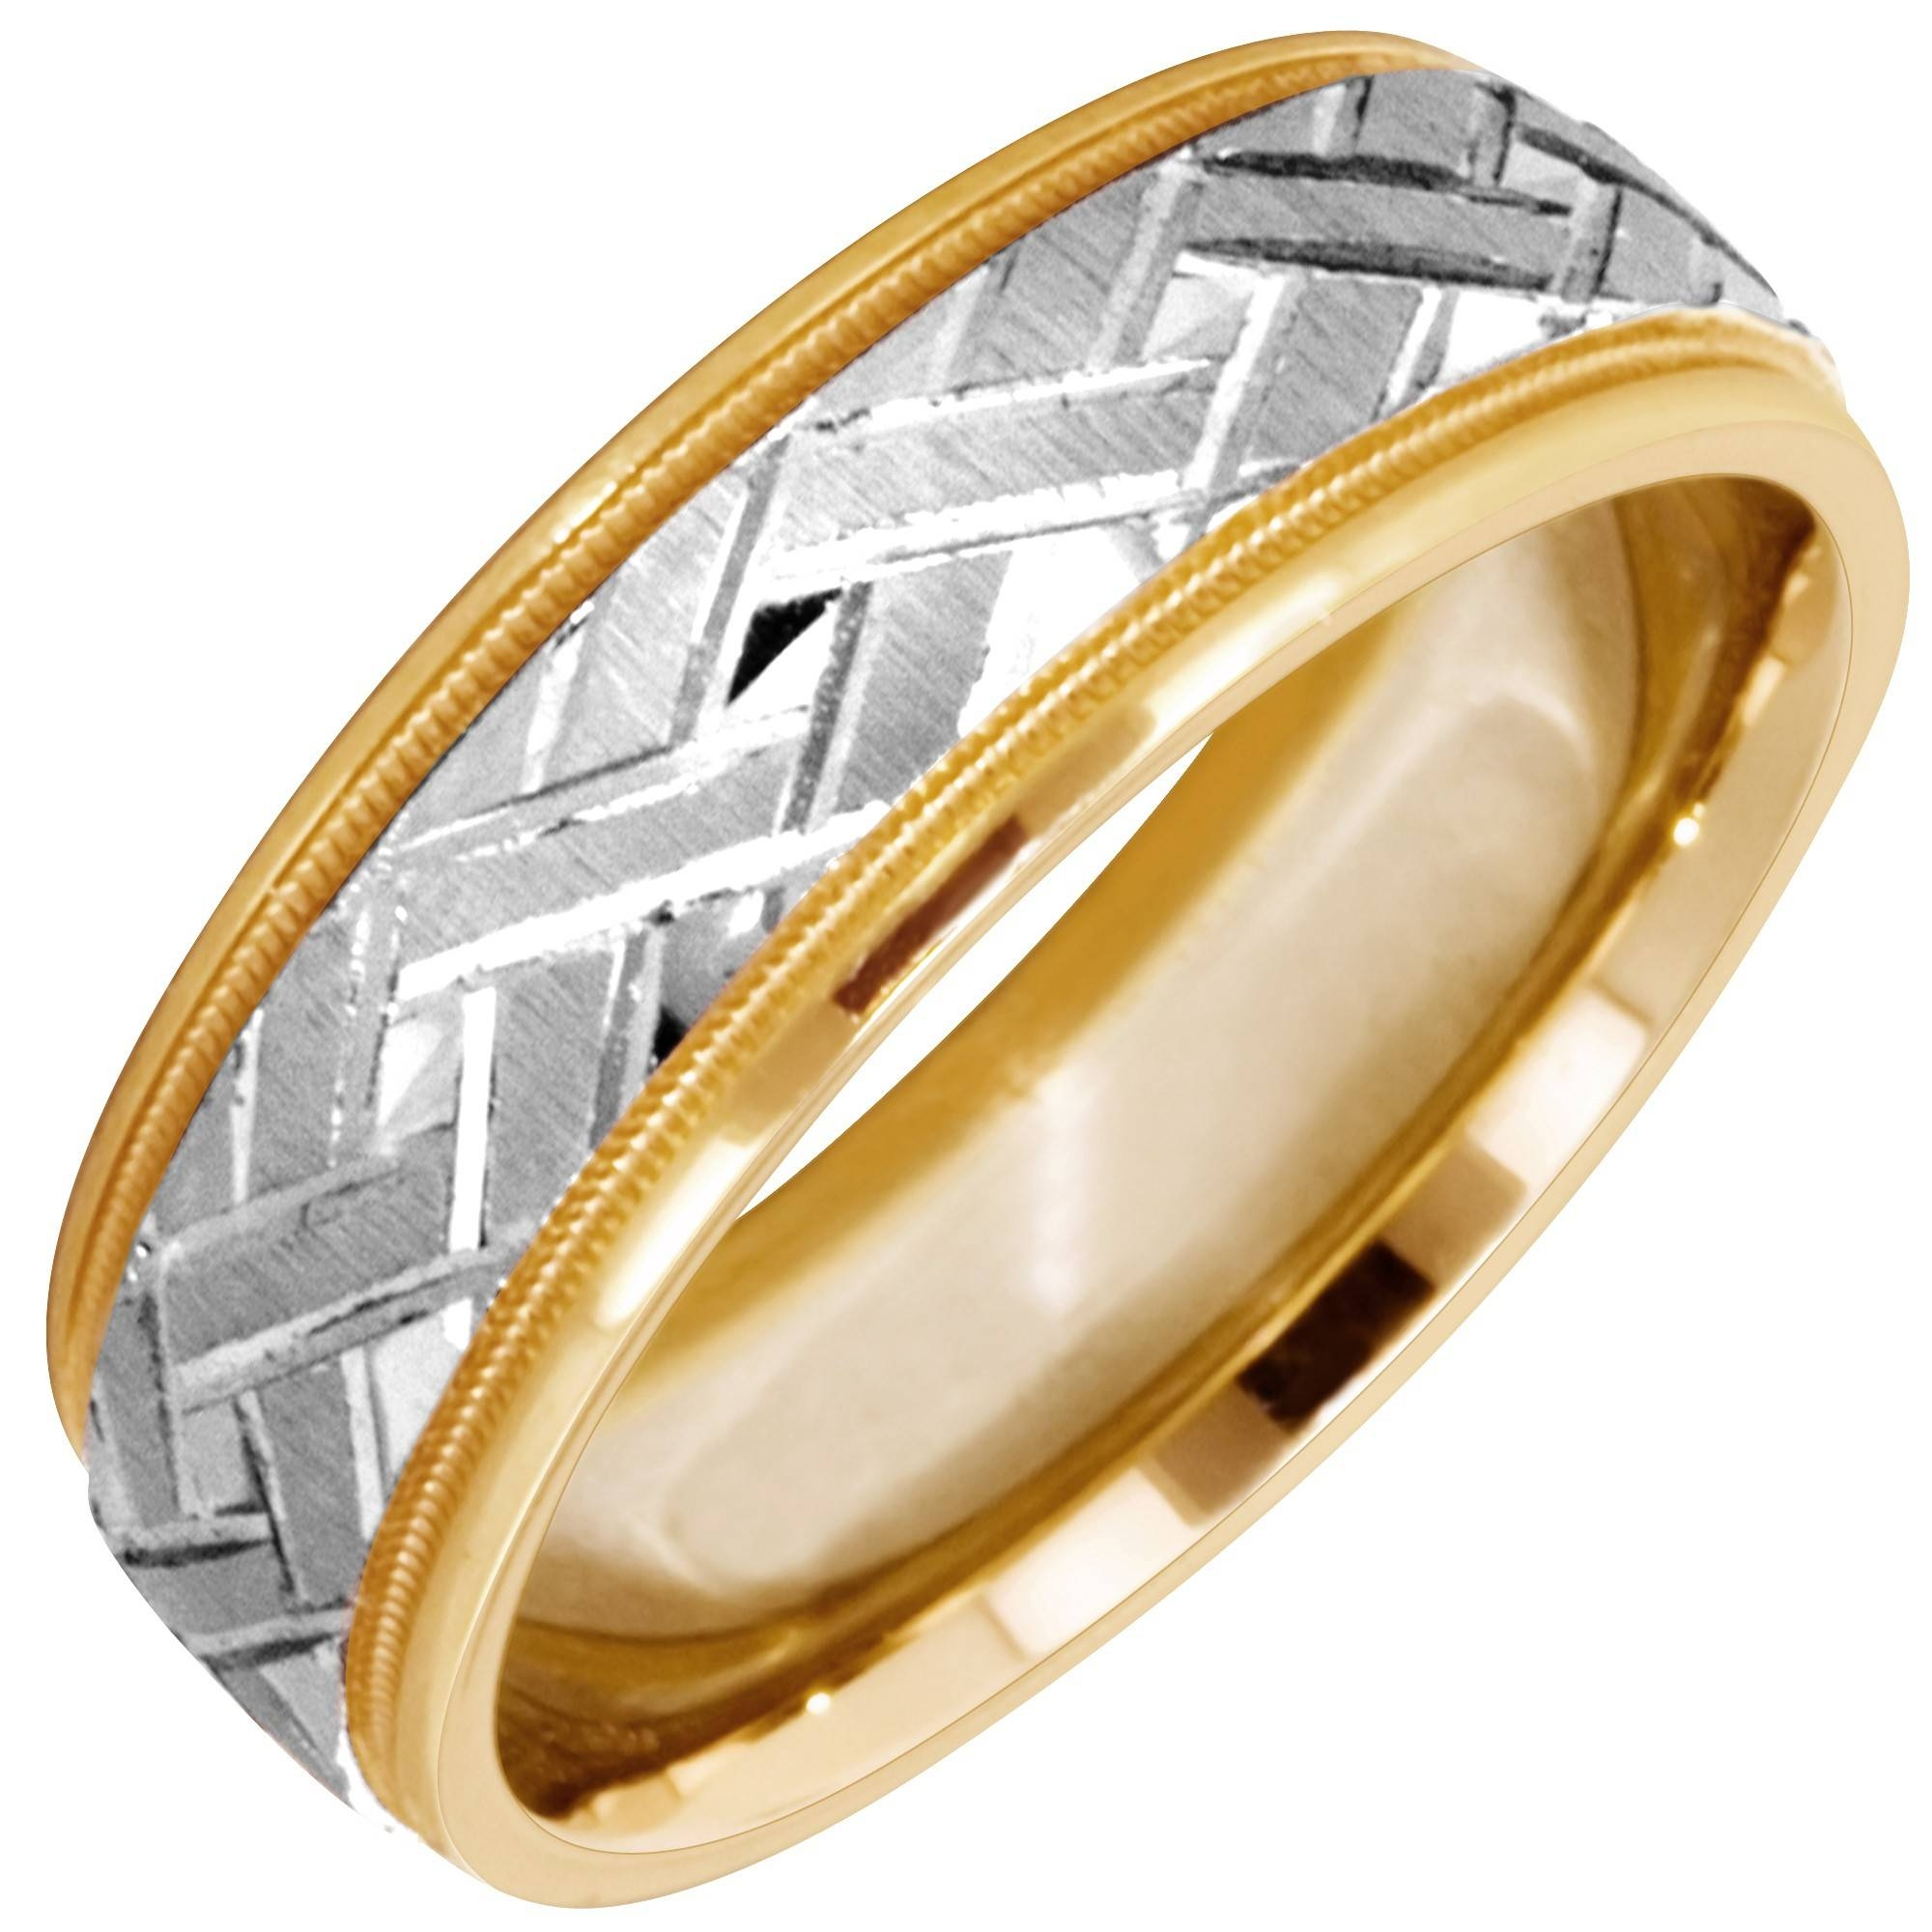 Artcarved Intrigue Mens Wedding Band In 14Kt Yellow And White Gold With Regard To Artcarved Men Wedding Bands (View 5 of 15)